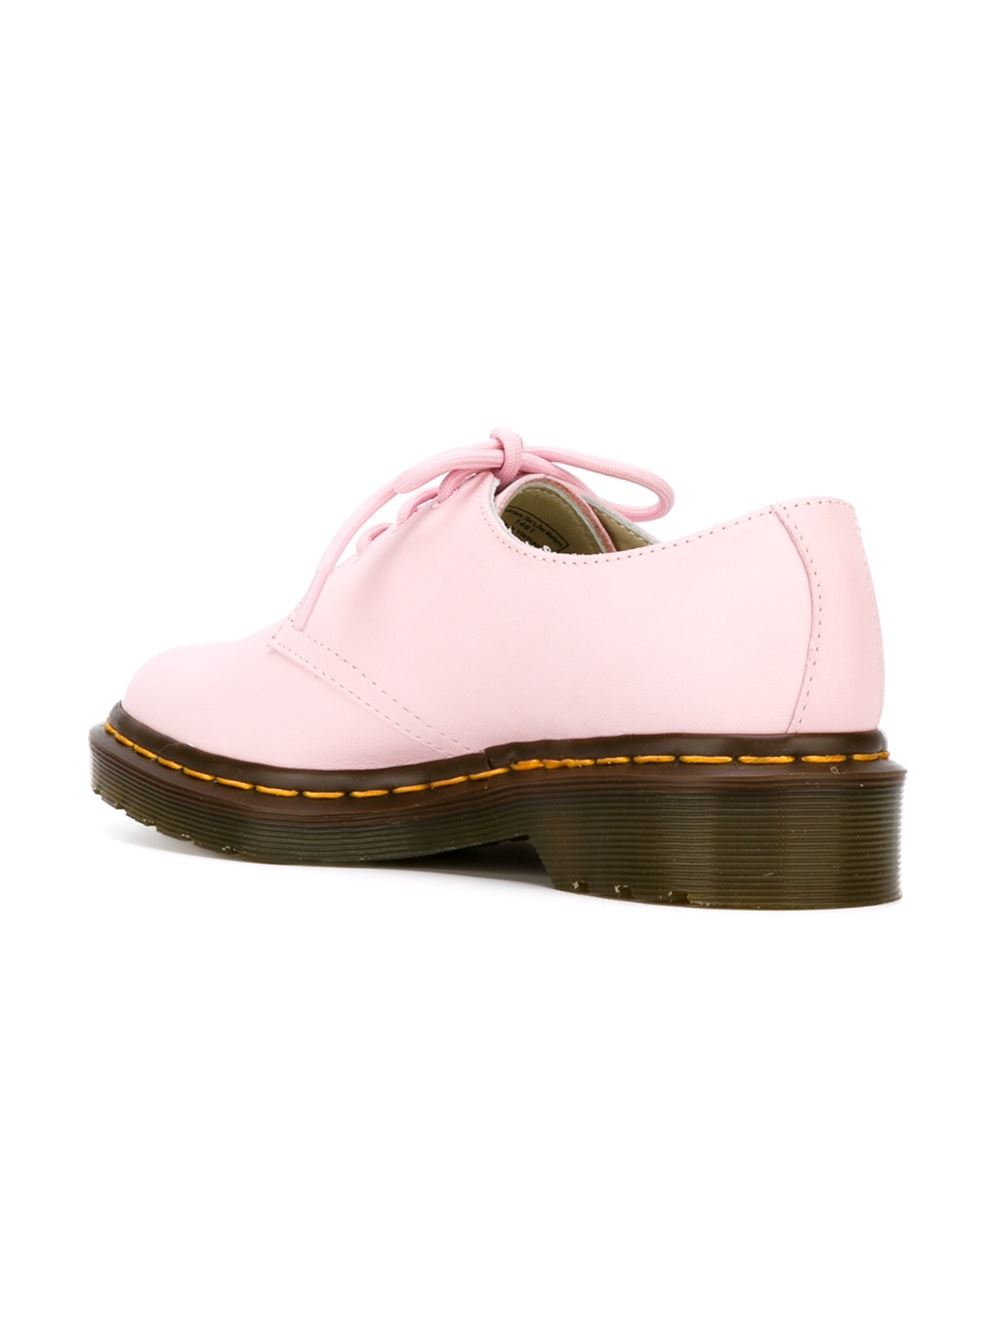 Dr. Martens 3 Eye Oxford Shoes In Pink | Lyst